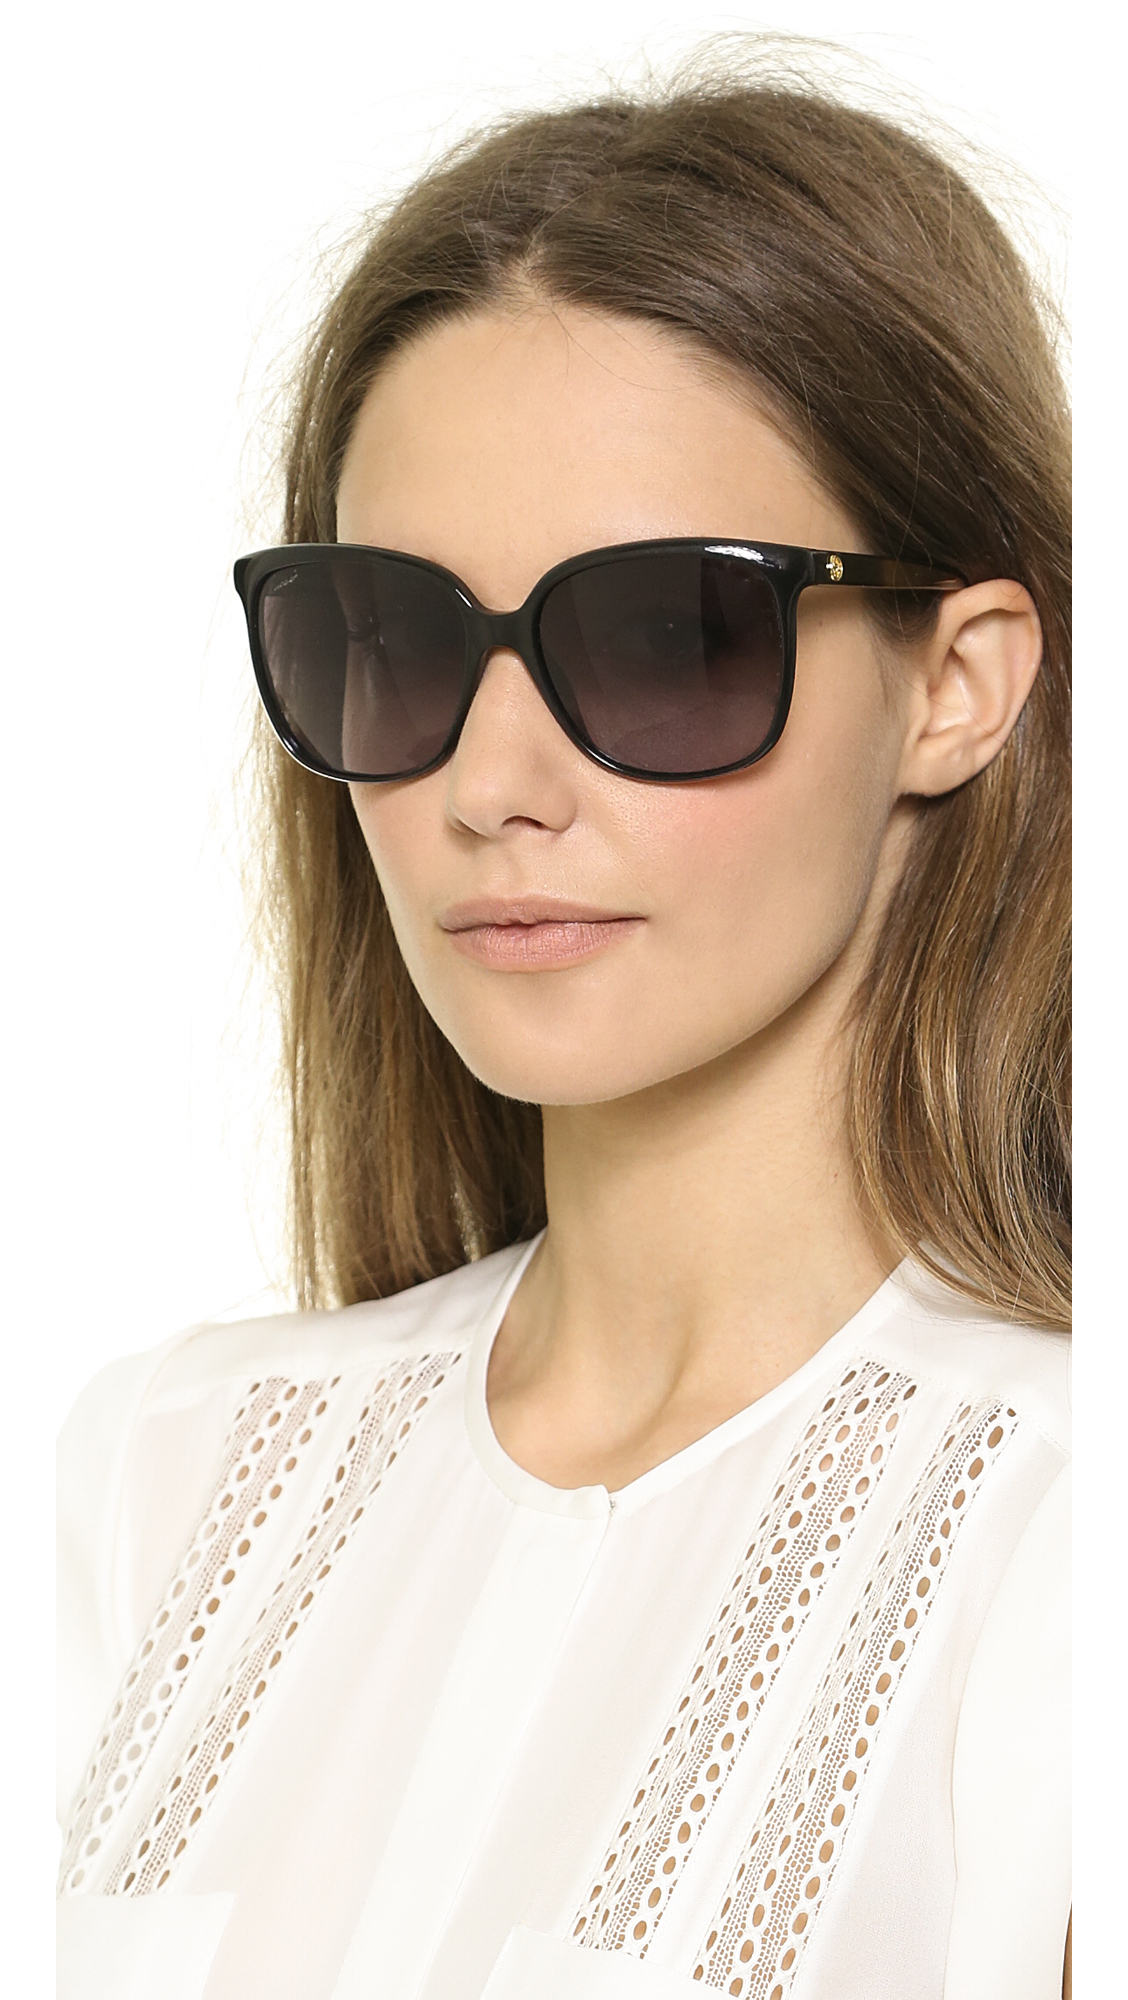 23fdddfa458 Lyst - Gucci Square Gradient Sunglasses - Violet Brown Gradient in Black